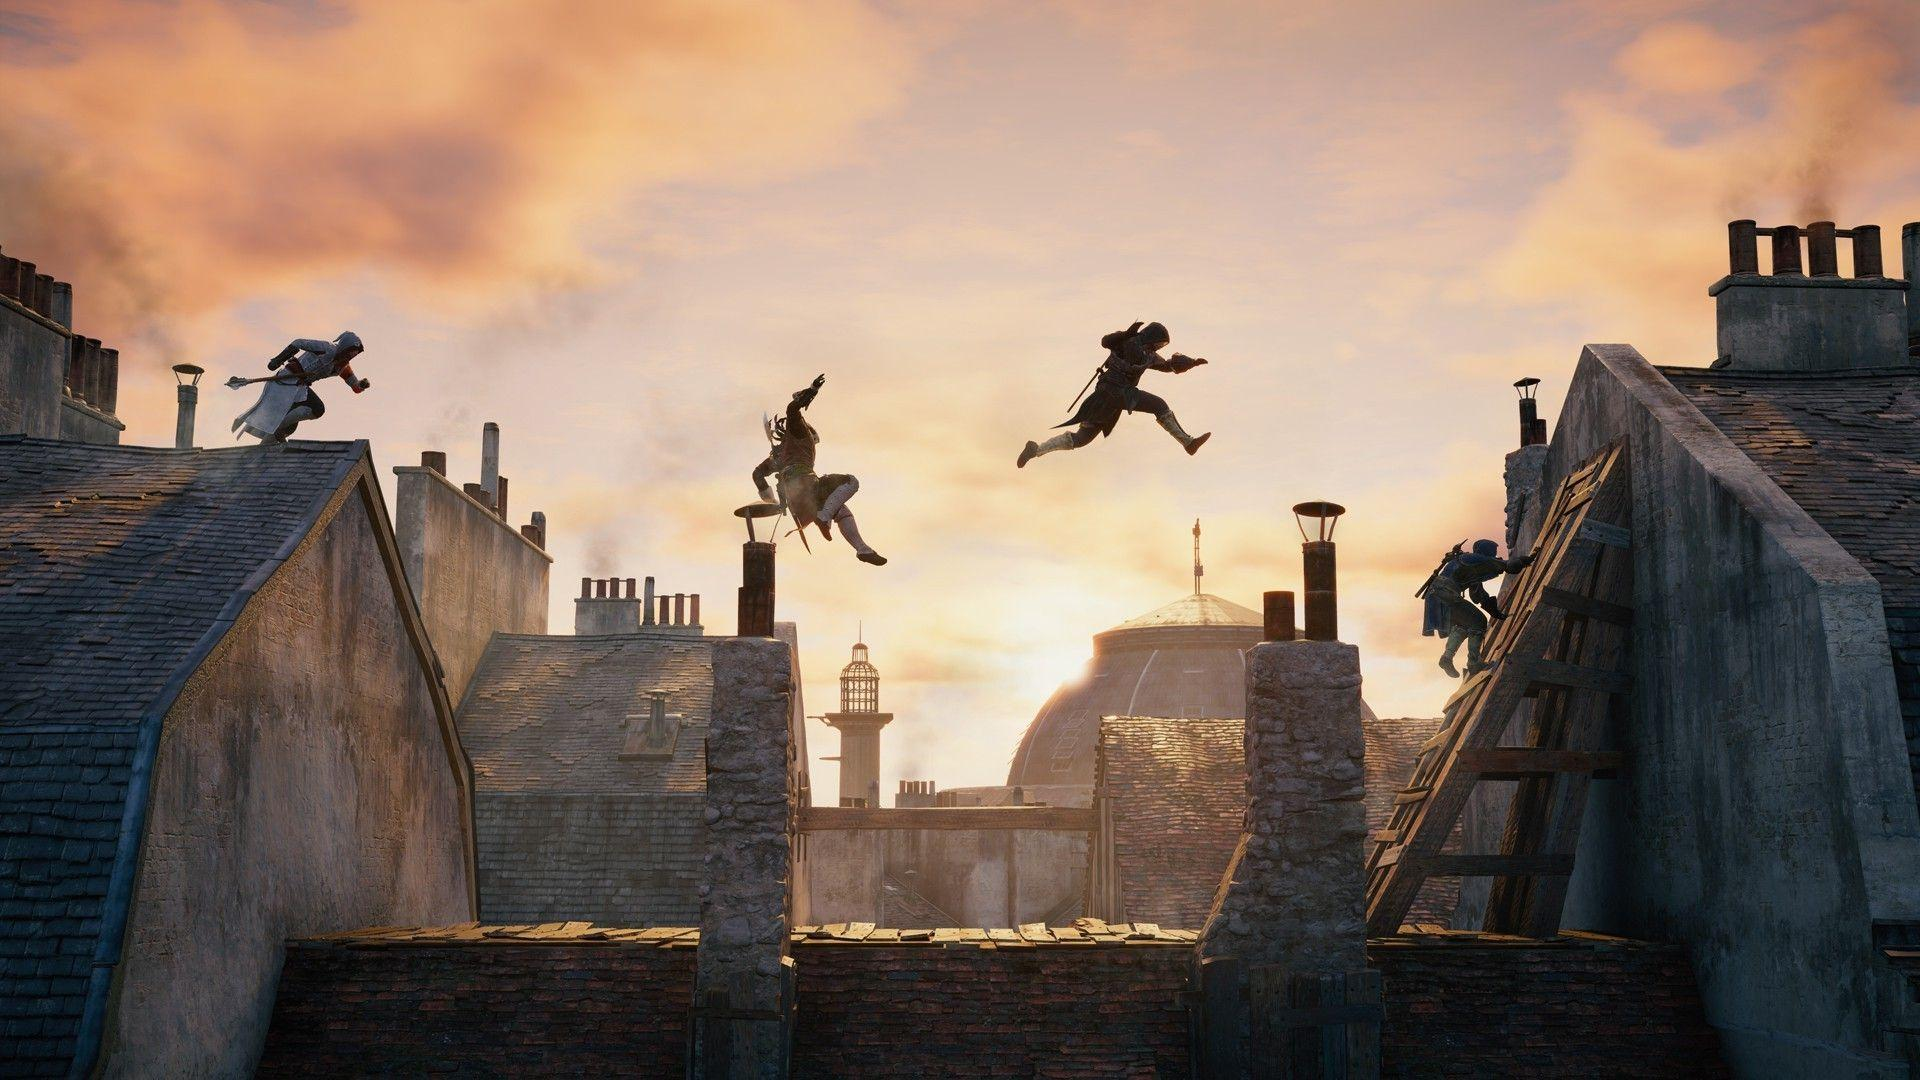 Download HD Assassins Creed Video Games Rooftops Parkour